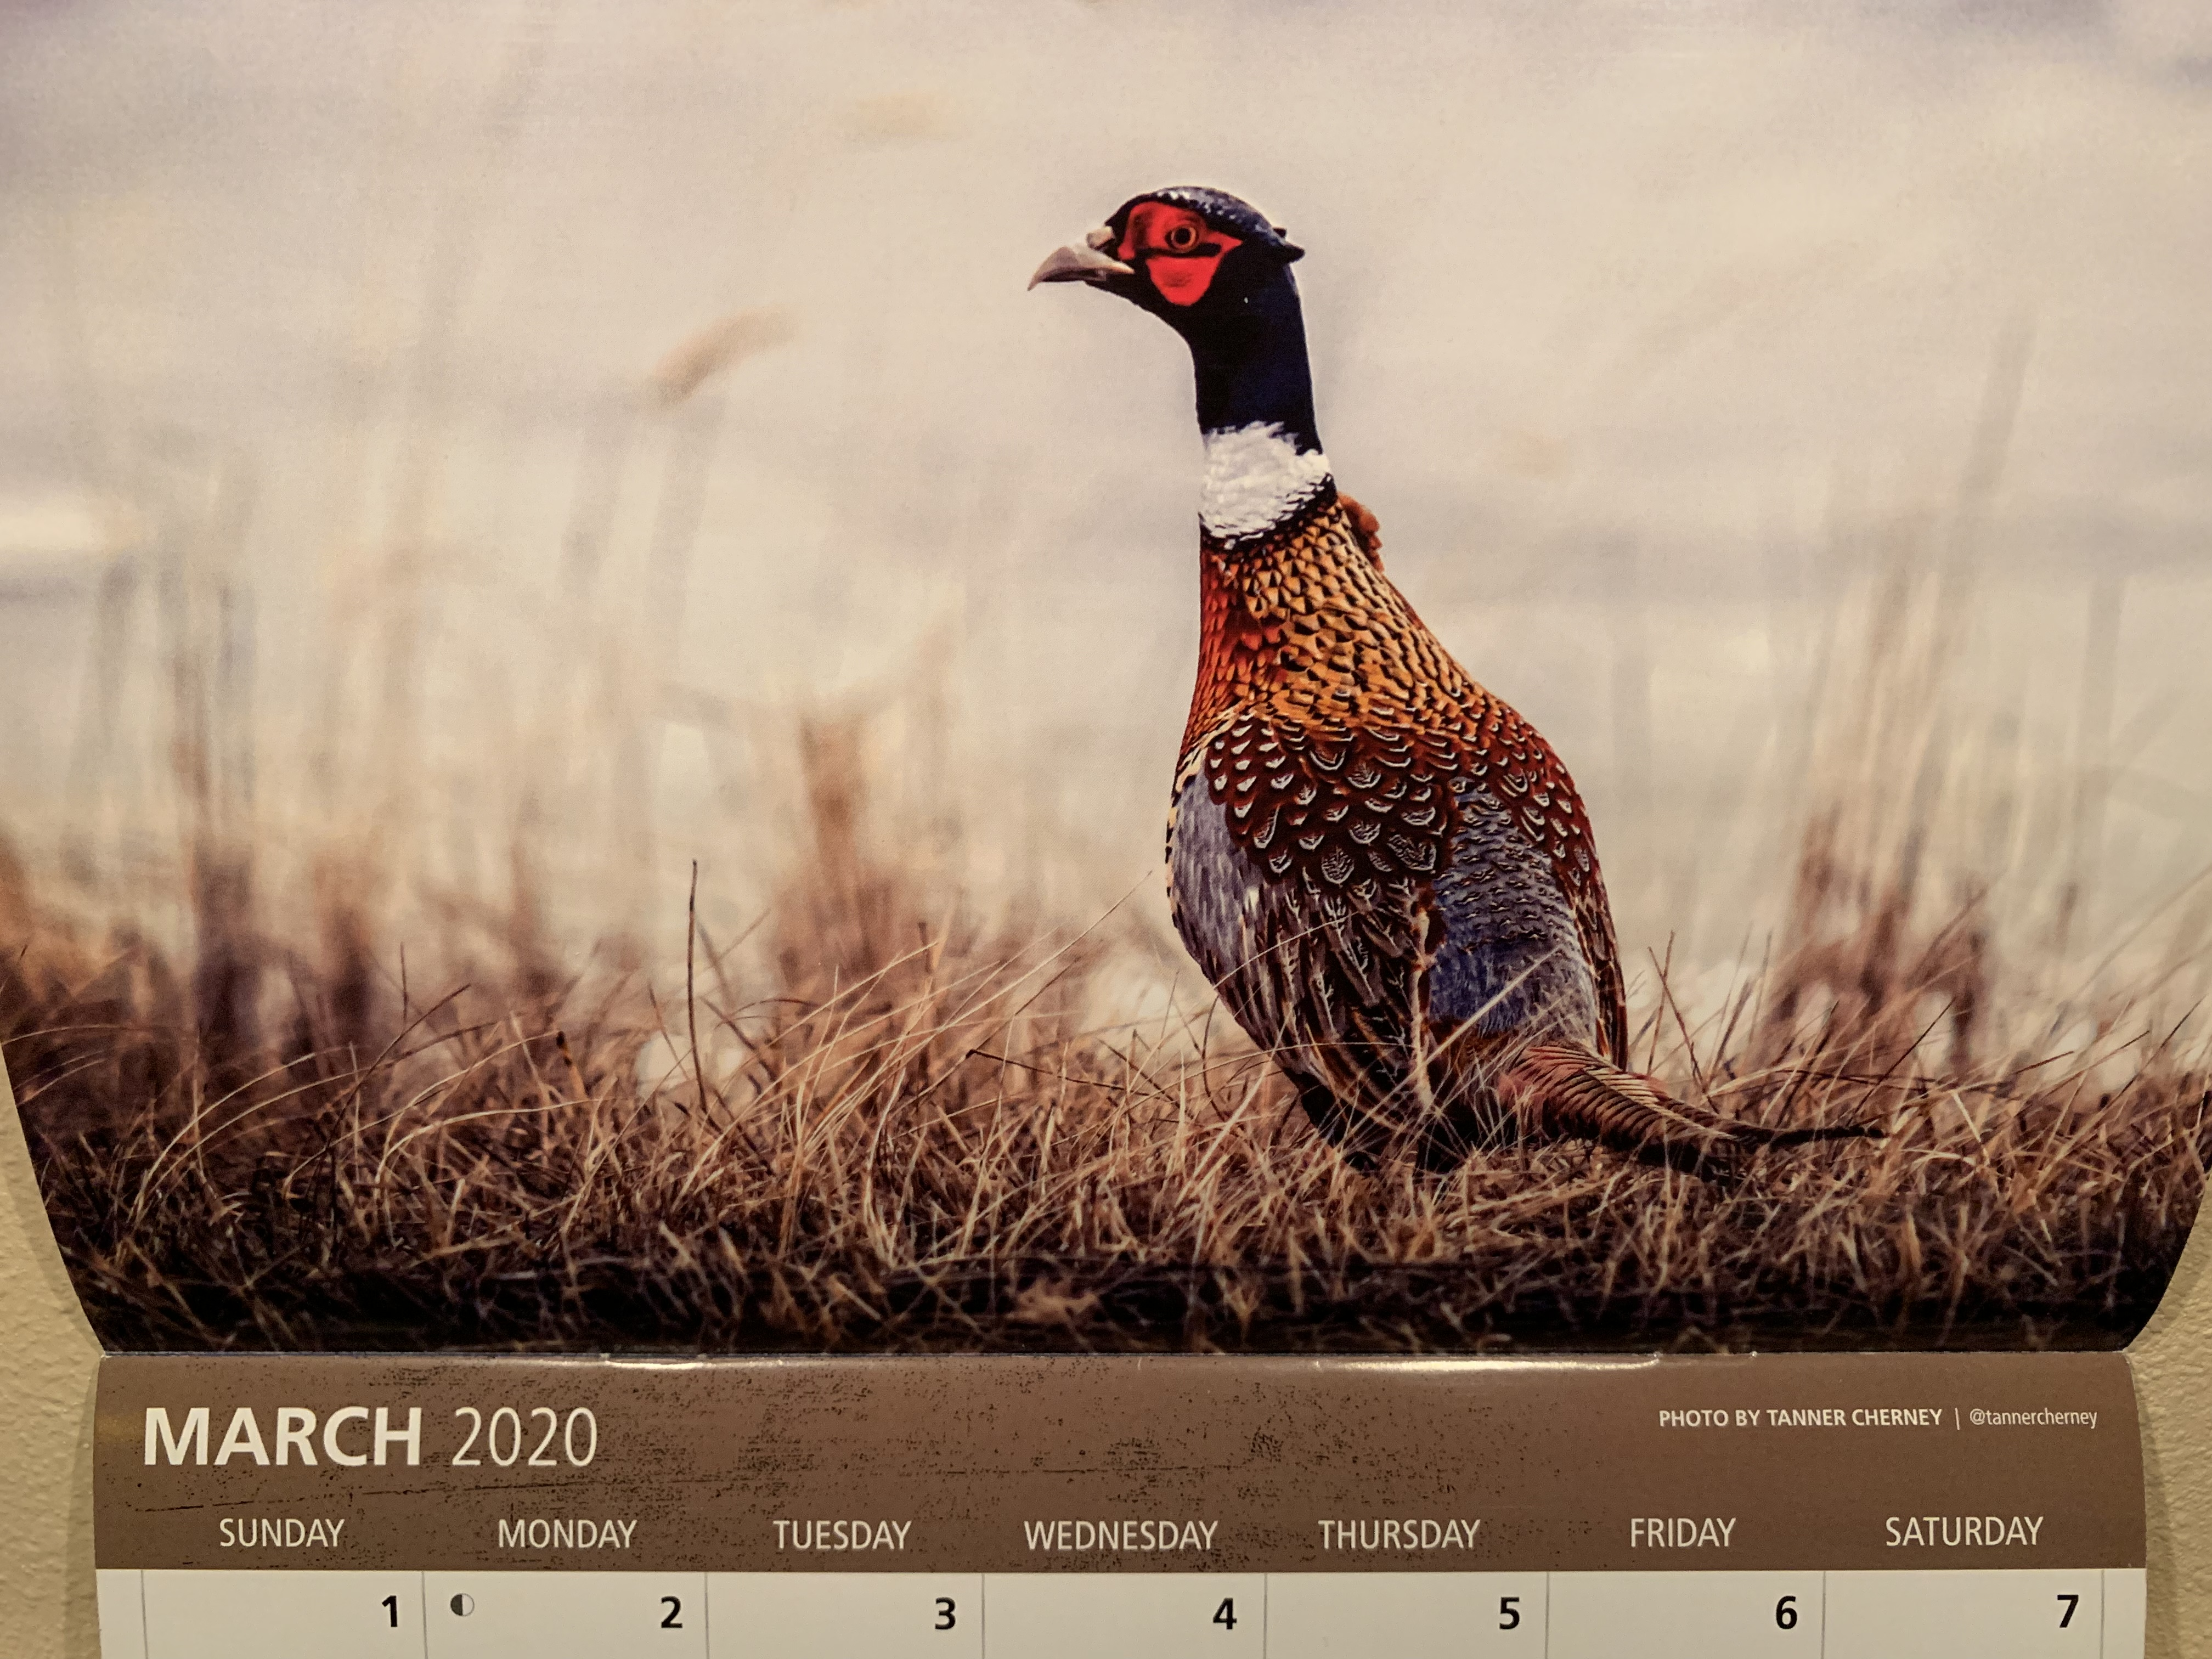 2020 Pheasant Forever Calendar Photo by Tanner Cherney of Peak Productions